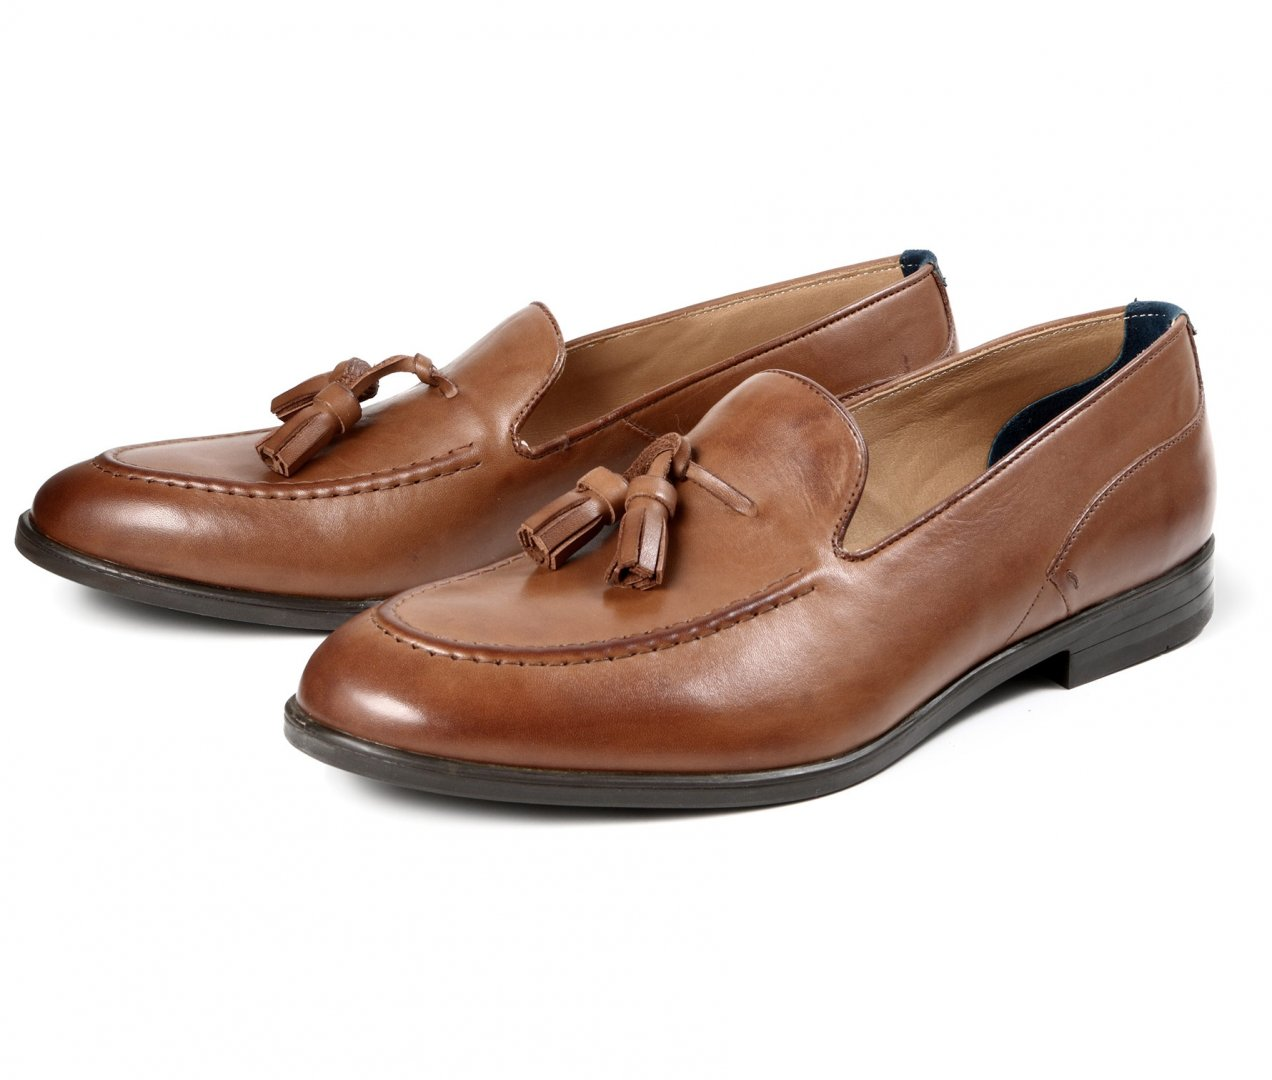 Hudson Shoes Tan Leather Dickson Tan Loafer